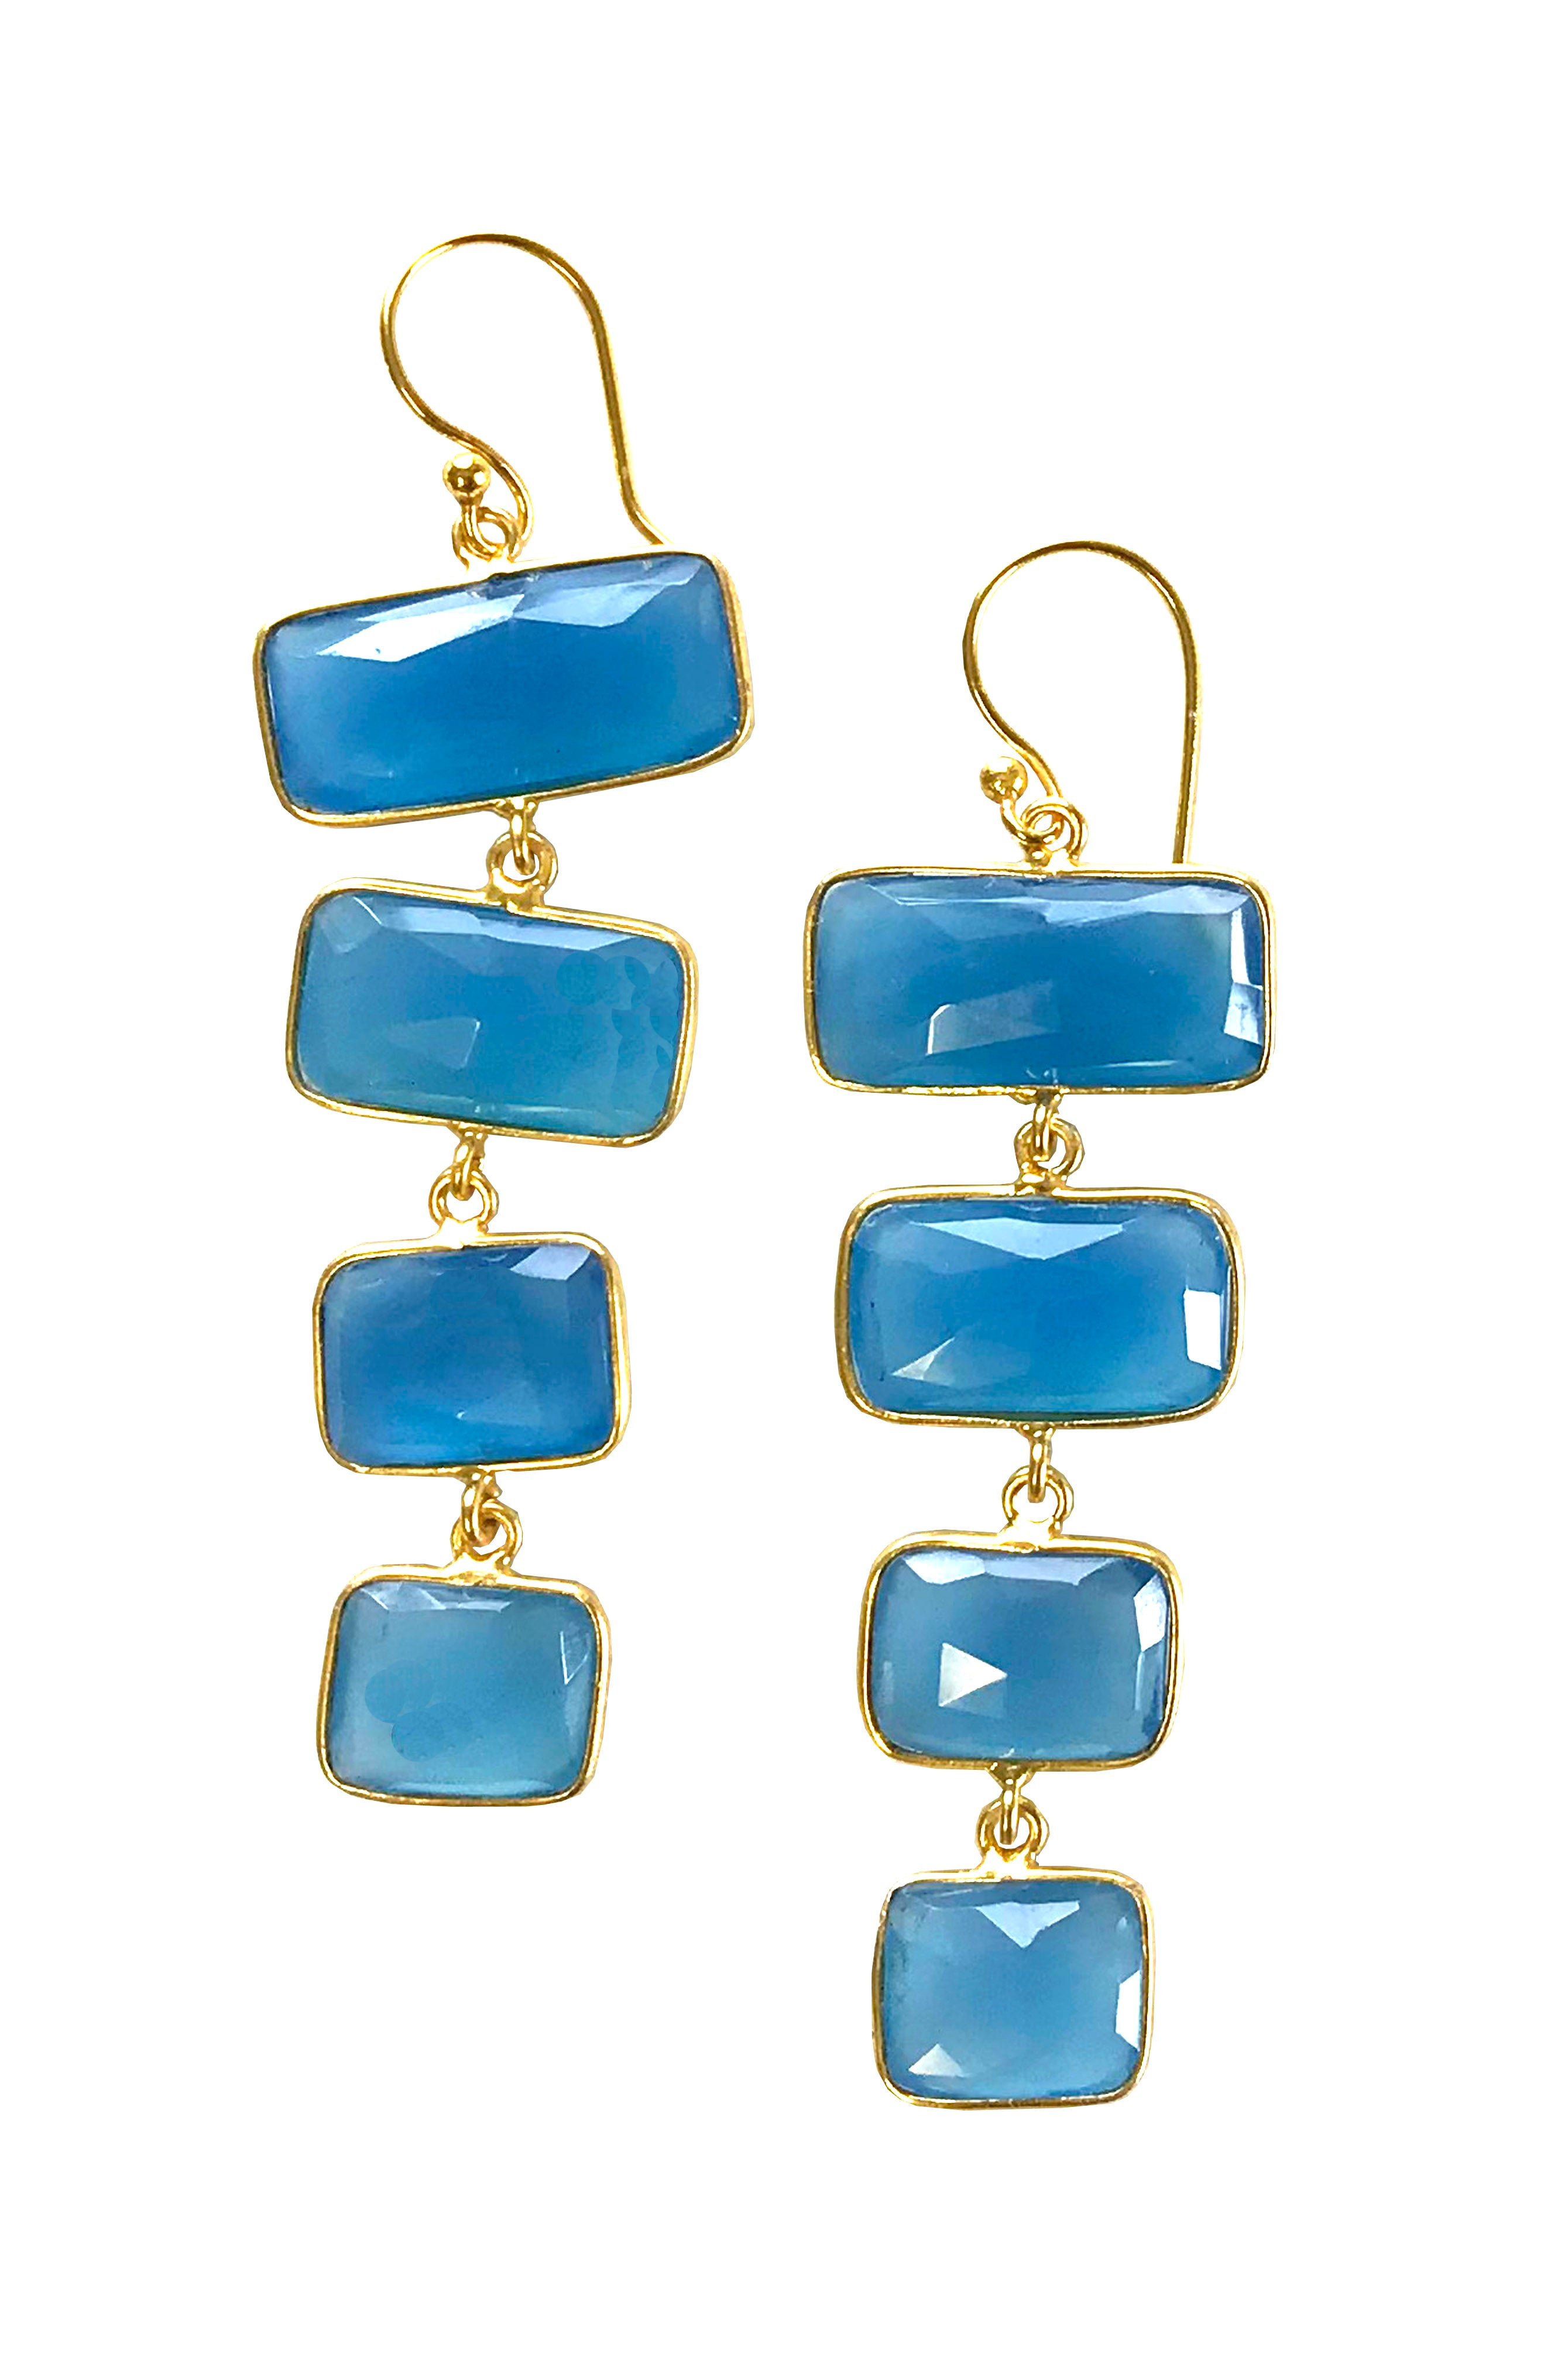 Luxurious Golden Cascading Drop Earrings with Blue Chalcedony